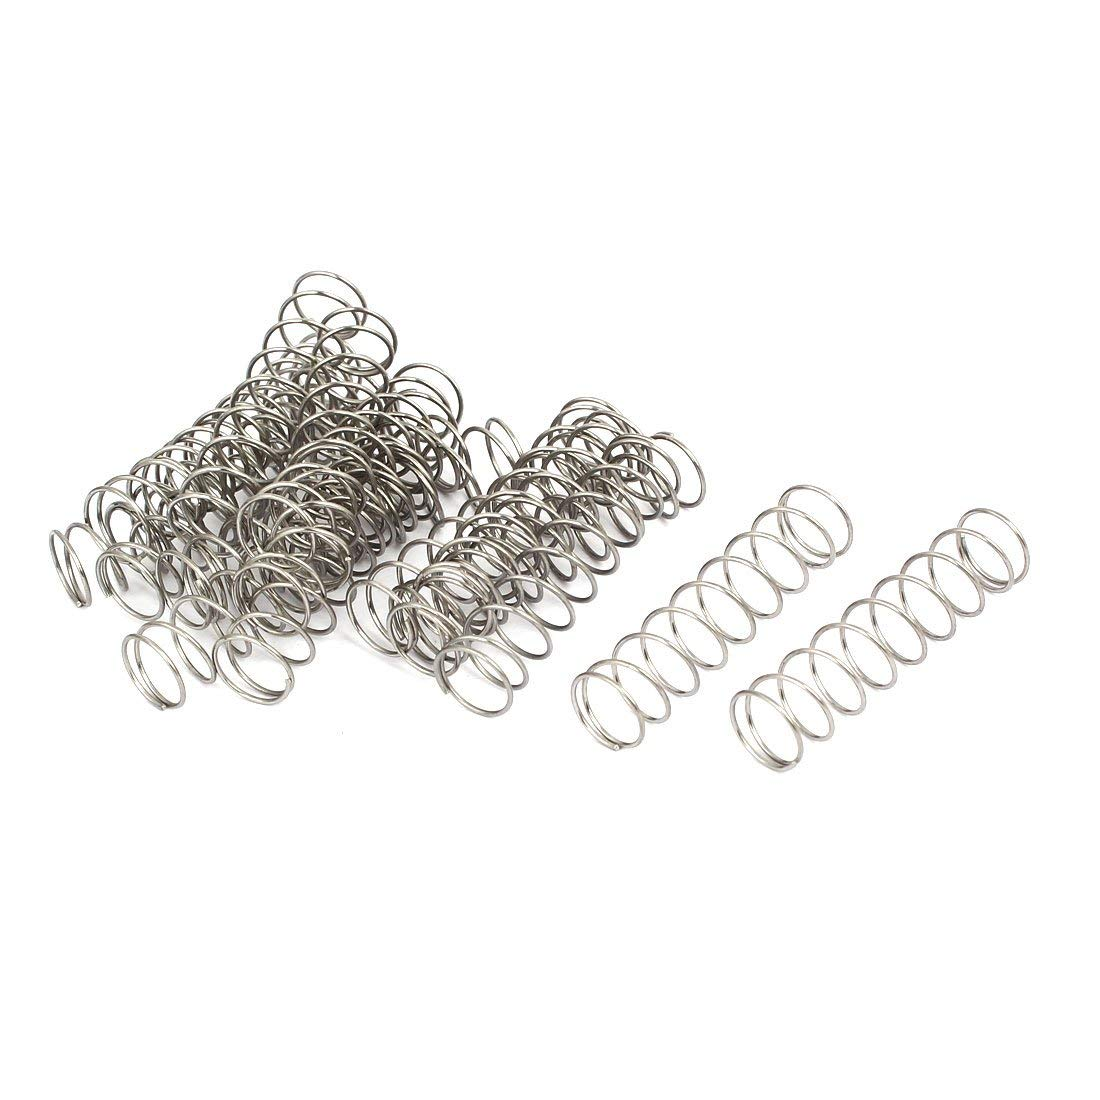 0.8mmx12mmx50mm 304 Stainless Steel Compression Springs Silver Tone 20pcs Miki&Co